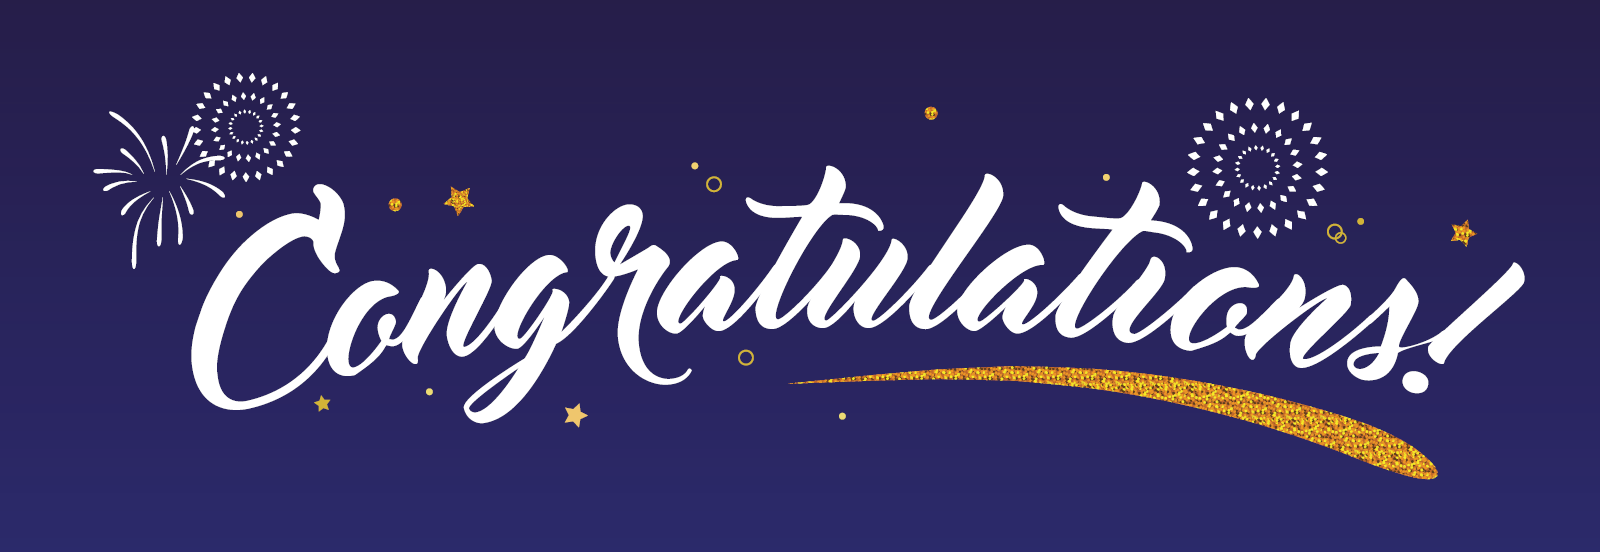 Congratulations banner with blue background